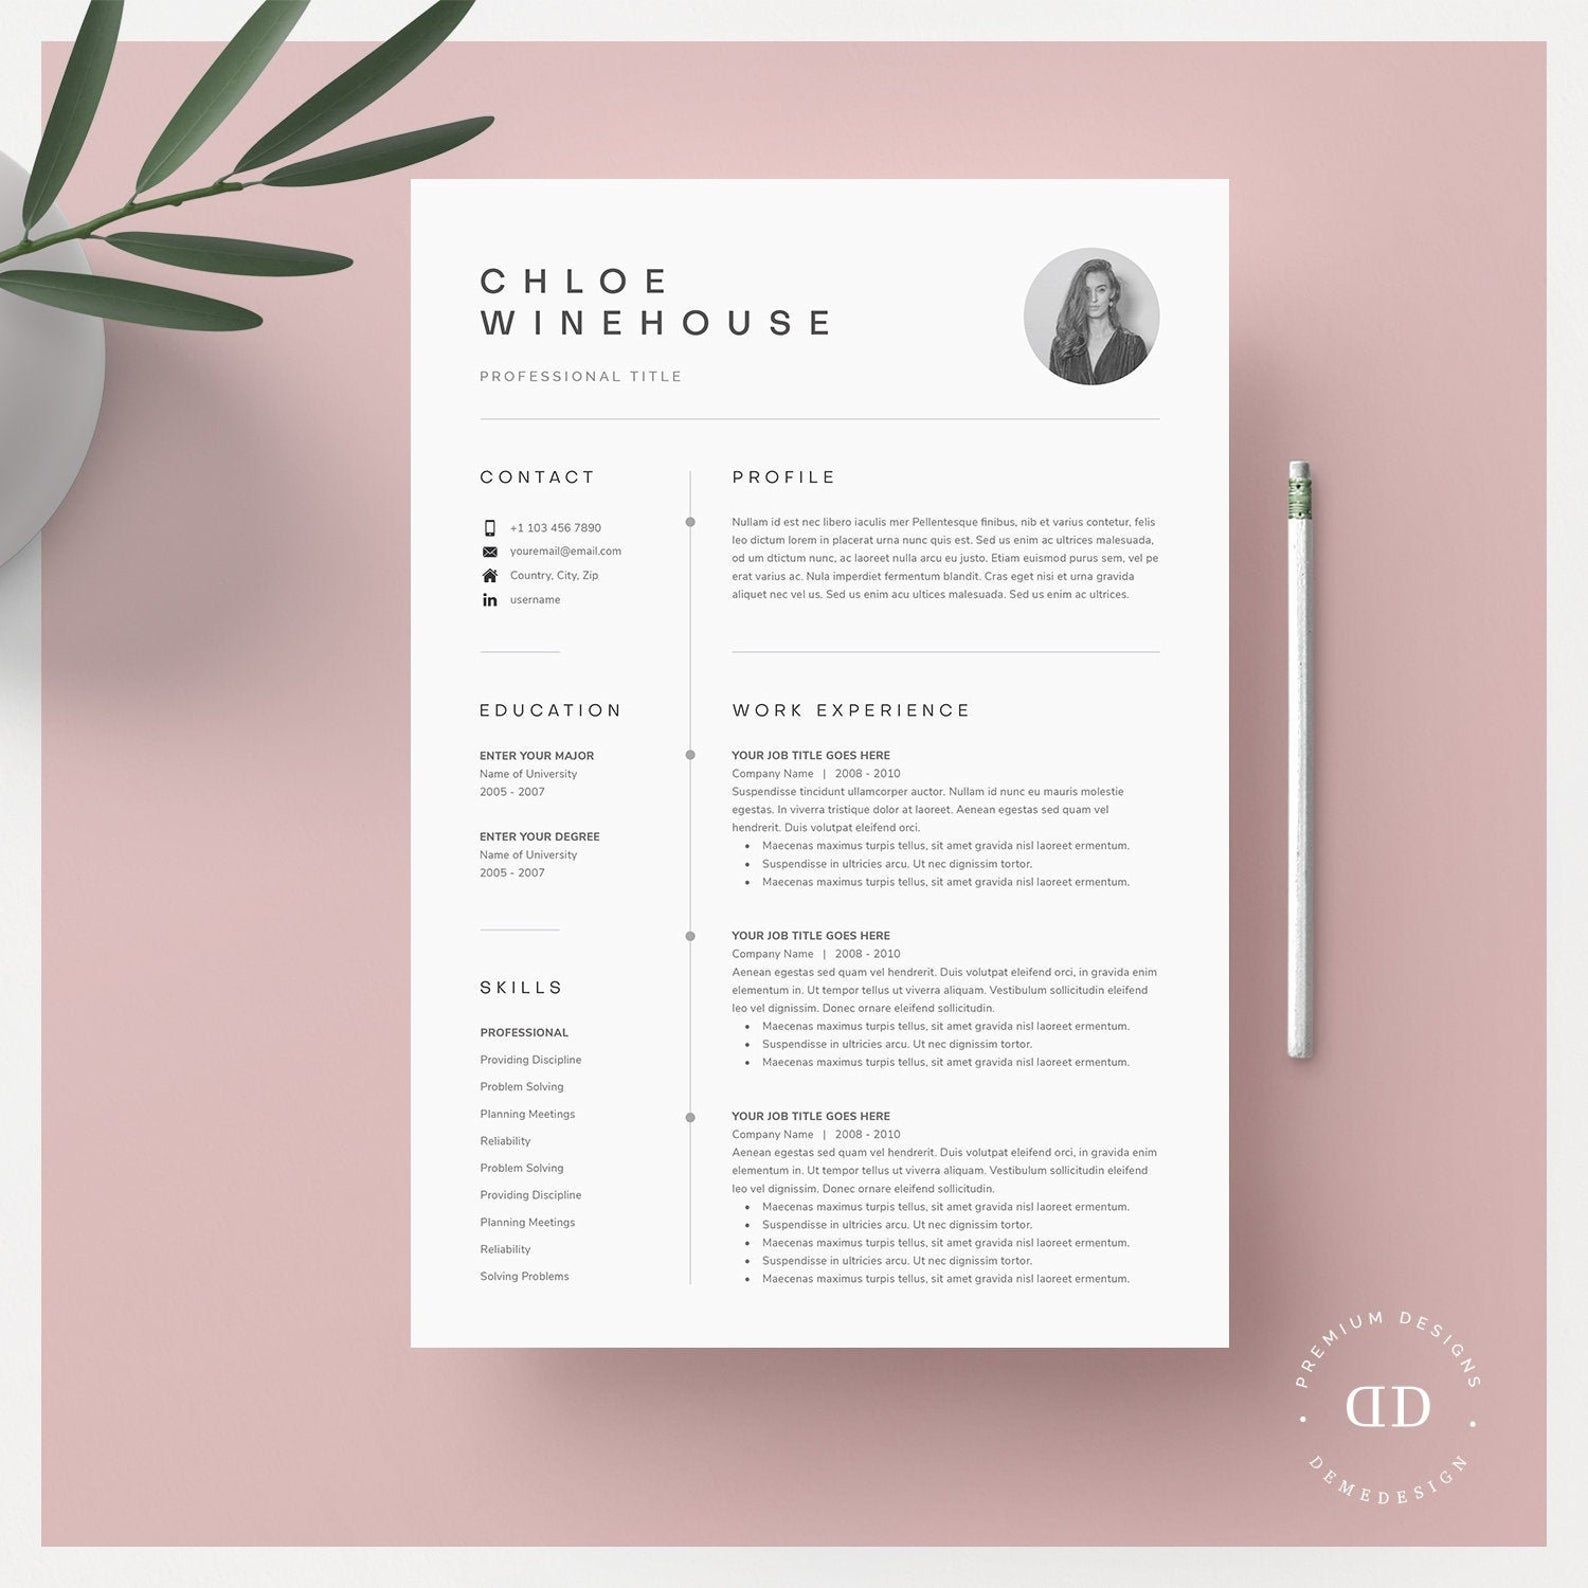 Resume Template Resume Template Word Resume With Picture CV CV Template Resume with Cover Letter Professional Resume Template Resume